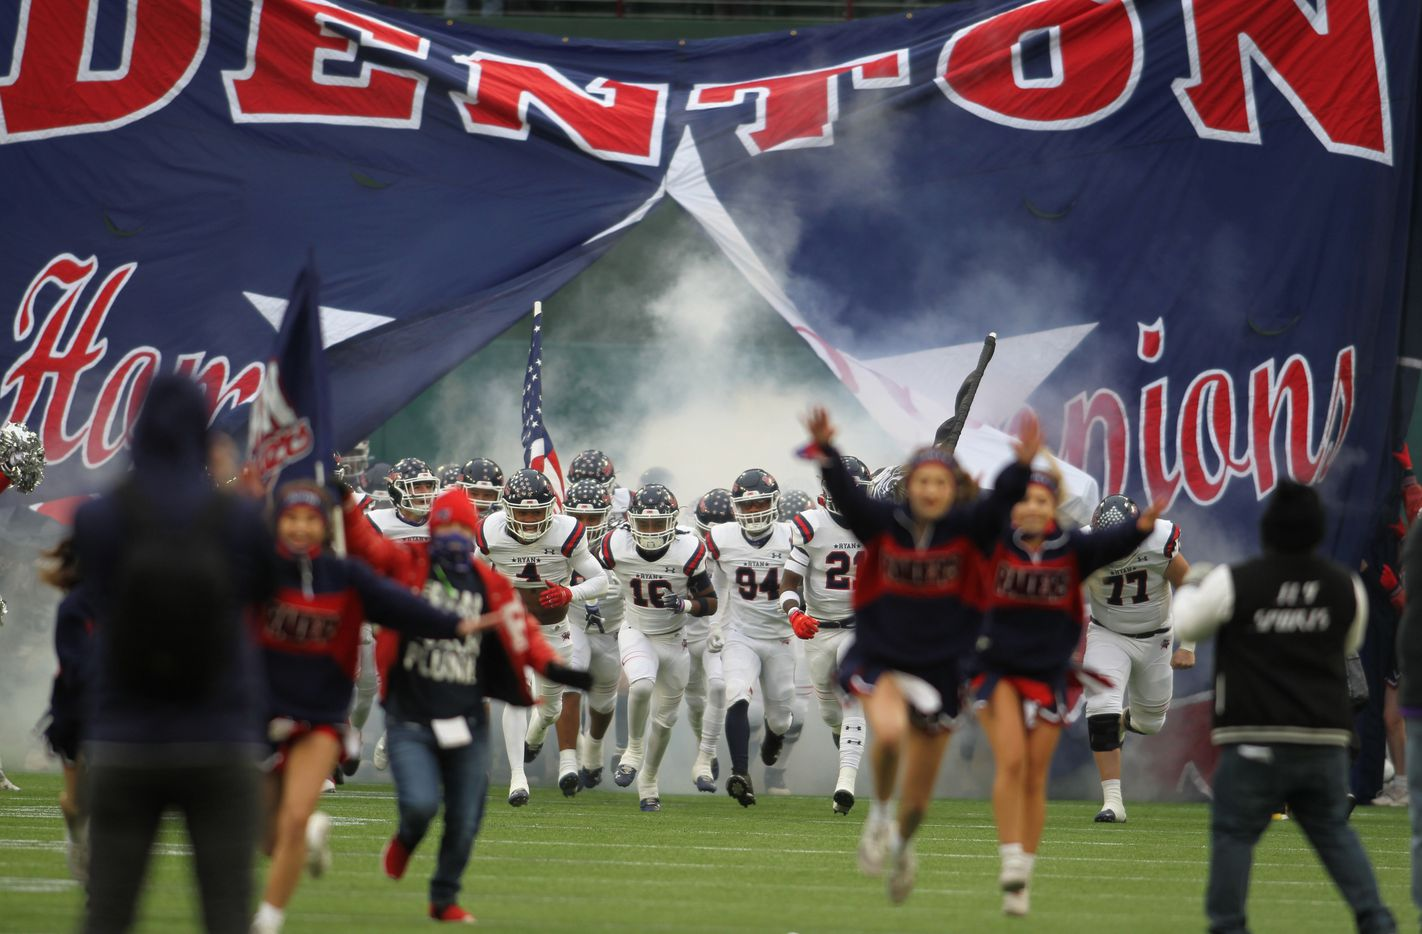 Denton Ryan players storm the field as they run through their team sign prior to the opening kickoff of their game against Highland Park. The two teams played their Class 5A Division l Region ll final football playoff game at Globe Life Park in Arlington on January 1, 2021. (Steve Hamm/ Special Contributor)